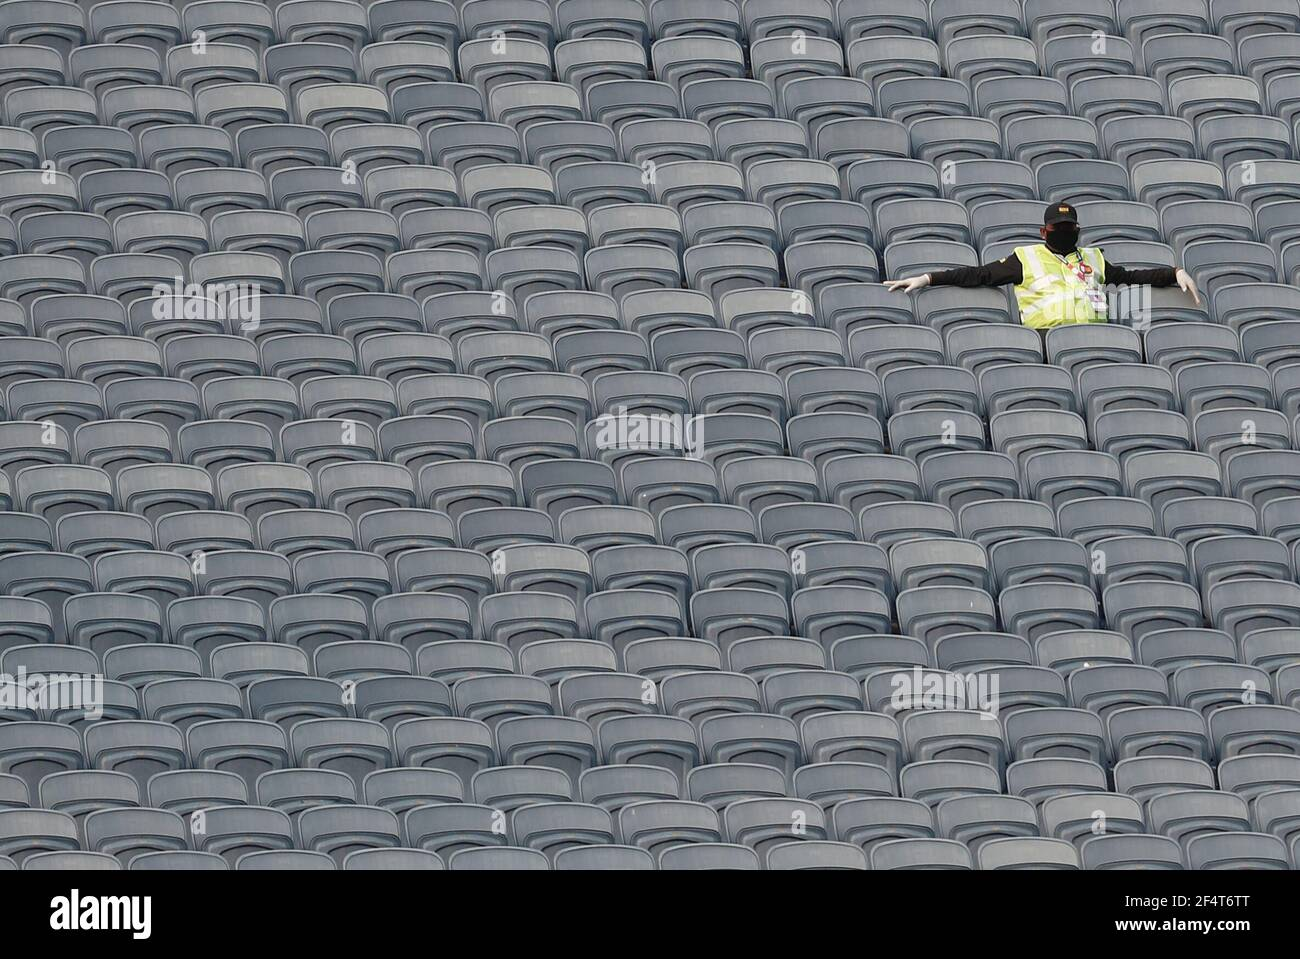 Cricket - First One Day International - India v England - Maharashtra Cricket Association Stadium, Pune, India - March 23, 2021  A member of security staff sits in the stands  REUTERS/Francis Mascarenhas Stock Photo